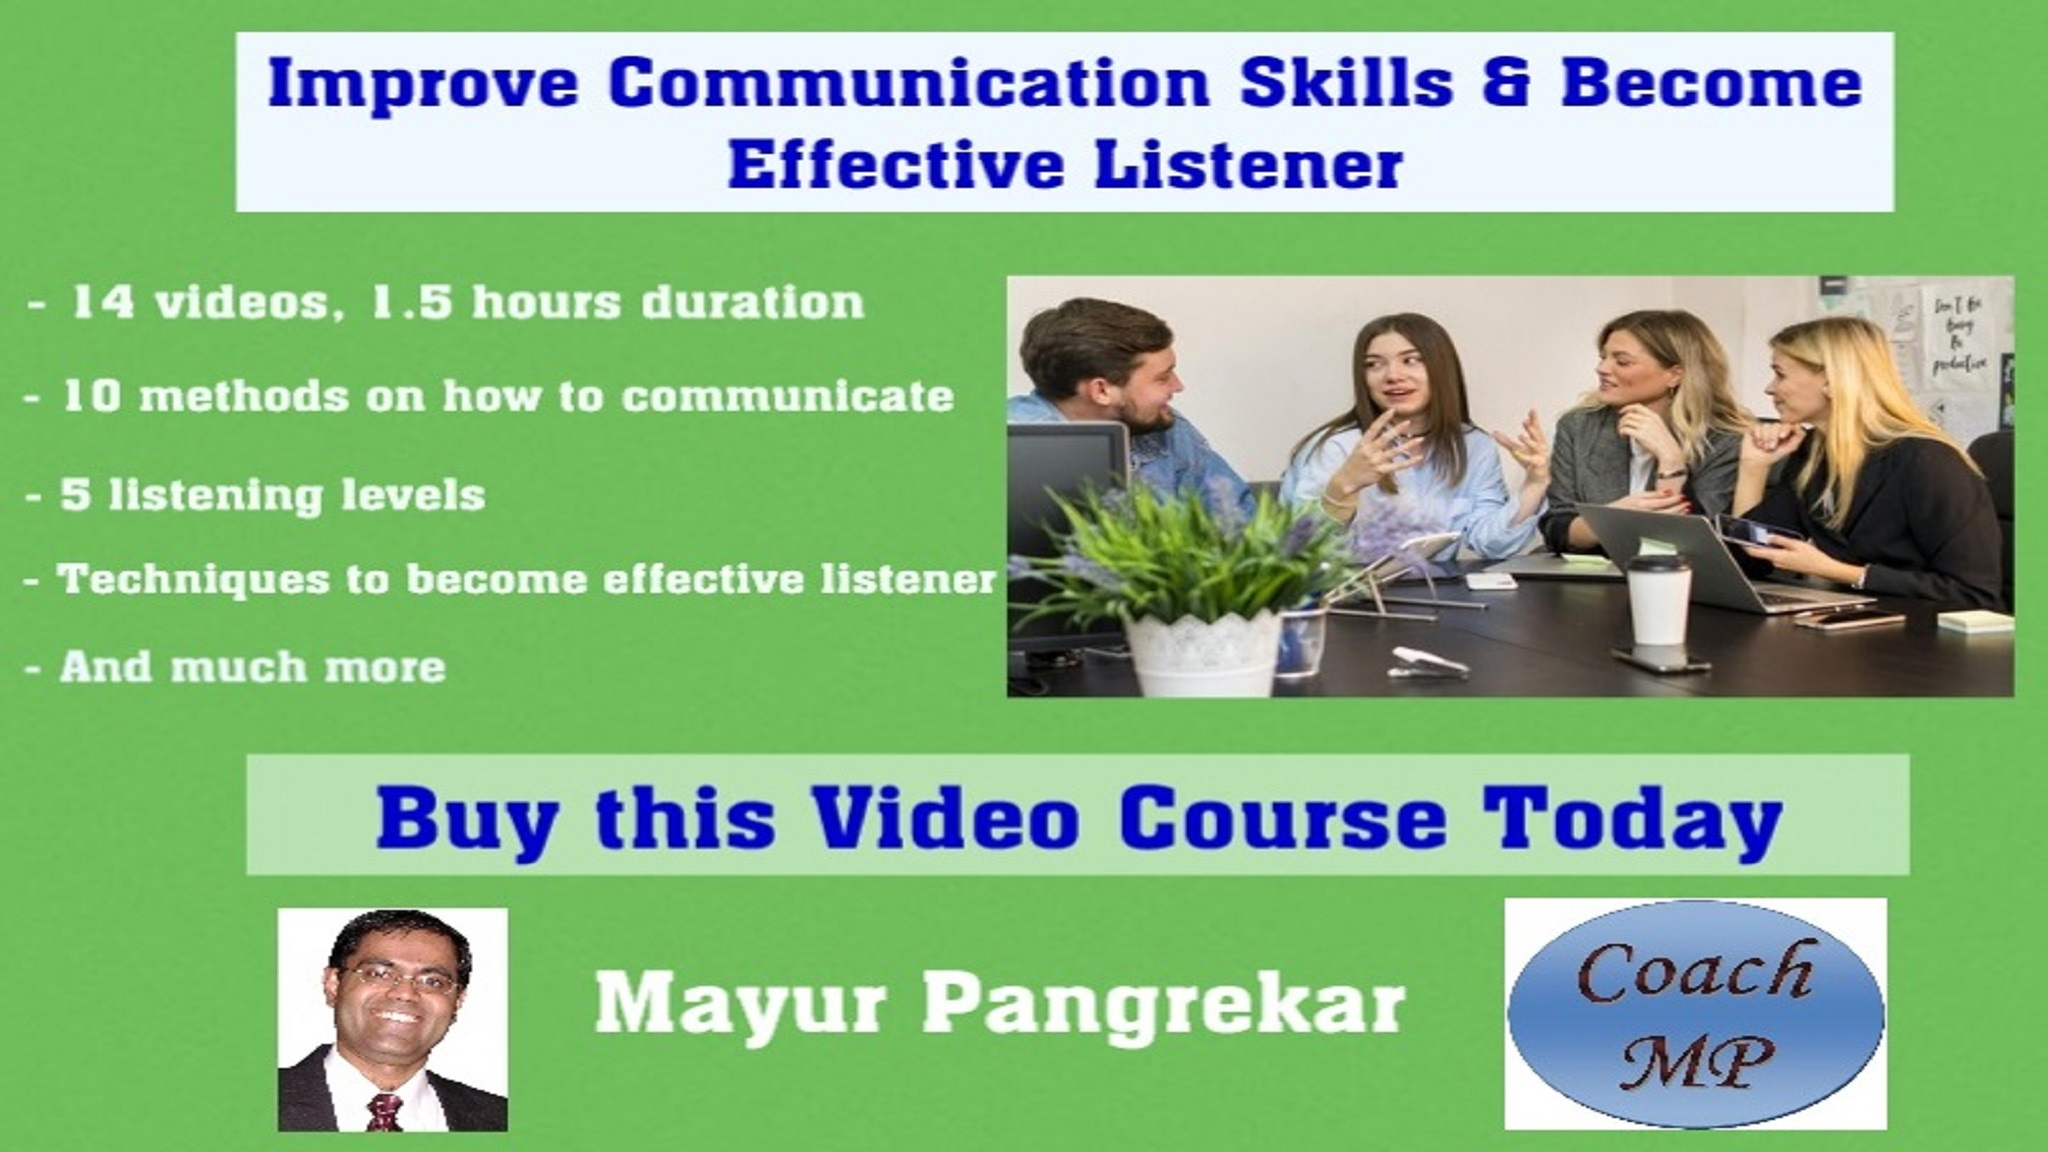 Improve Communication Results & Become Effective Listener